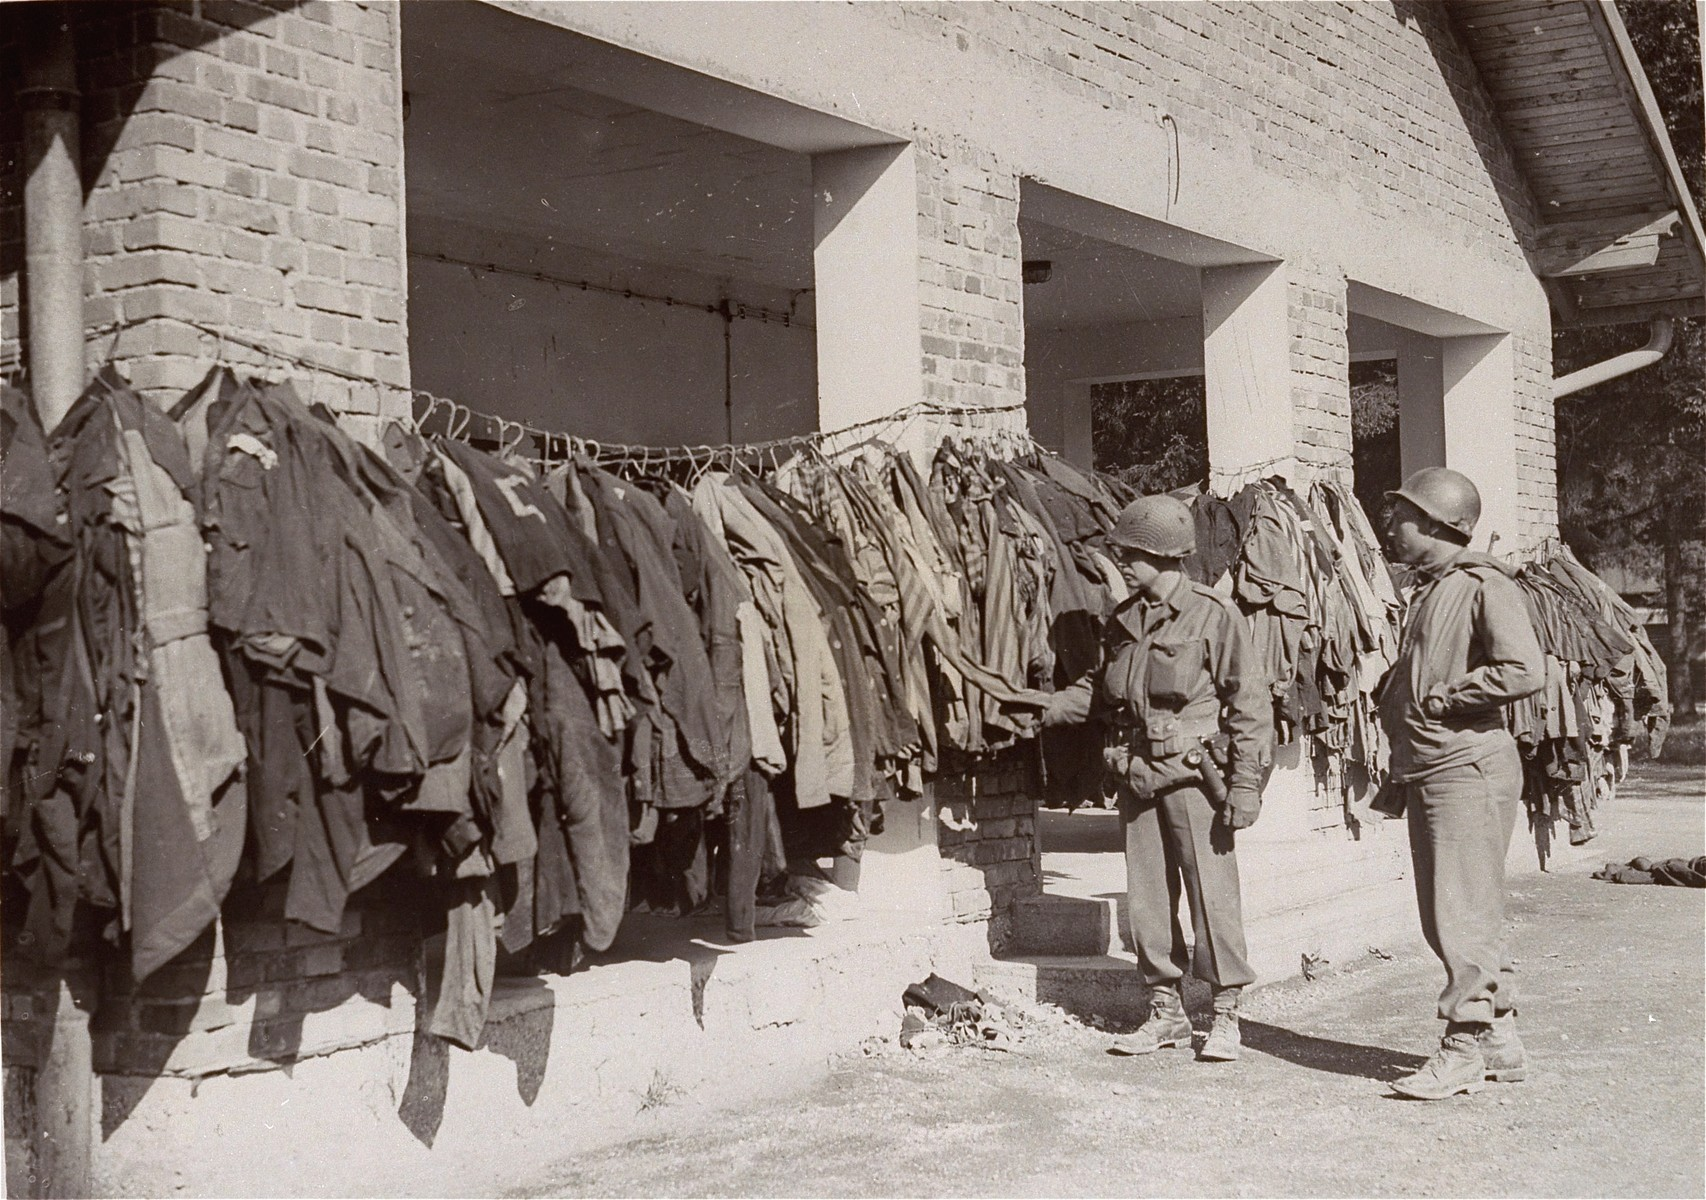 "Two American soldiers examine disinfected prisoner uniforms in Dachau.  Original caption reads: ""Dachau Concentration Camp.  Horrors worse than those found in the German concentration camps of Buchenwald and Belsen were discovered in the stinking hell-hole of Dachau, captured by troops of the 42nd and 45th Infantry Divisions of the Seventh U.S. Army April 30, 1945.  More than 32,000 prisoners were liberated, among them some Englishmen, Canadians and Americans.  The camp was formally surrendered by an SS lieutenant carrying a white flag, accompanied by a Swiss Red Cross official, but SS troops opened fire as American troops approached the main entrance.  The Germans were shot down.  Three prisoners were electrocuted when they tried to burst through the electrified wire barrier to welcome the Americans.  SS guards opened fire on other prisoners who went wild with joy and rushed to meet the liberating troops.  Prisoners with access to records said 9,000 people died of hunger, disease or shooting within the past three months at Dachau.  Four thousand more perished during cold Winter months.  When Americans entered the camp, they found 50 open railway cars standing on a siding, apparently full of dirty clothing but actually found to contain hundreds of corpses piled on top of each other.  They also found a row of kennels where fierce dogs were kept to set after escaping men.  They discovered gas extermination chambers, incinerators full of naked bodies, bodies marked for dissection and the bodies of several small children.    This photo shows: Soldiers of the Seventh U.S. Army inspect the clothing of dead prisoners hanging outside the Dachau crematory.  Although alive with lice, they were given to new prisoners, whose better clothing was distributed to German civilians."""